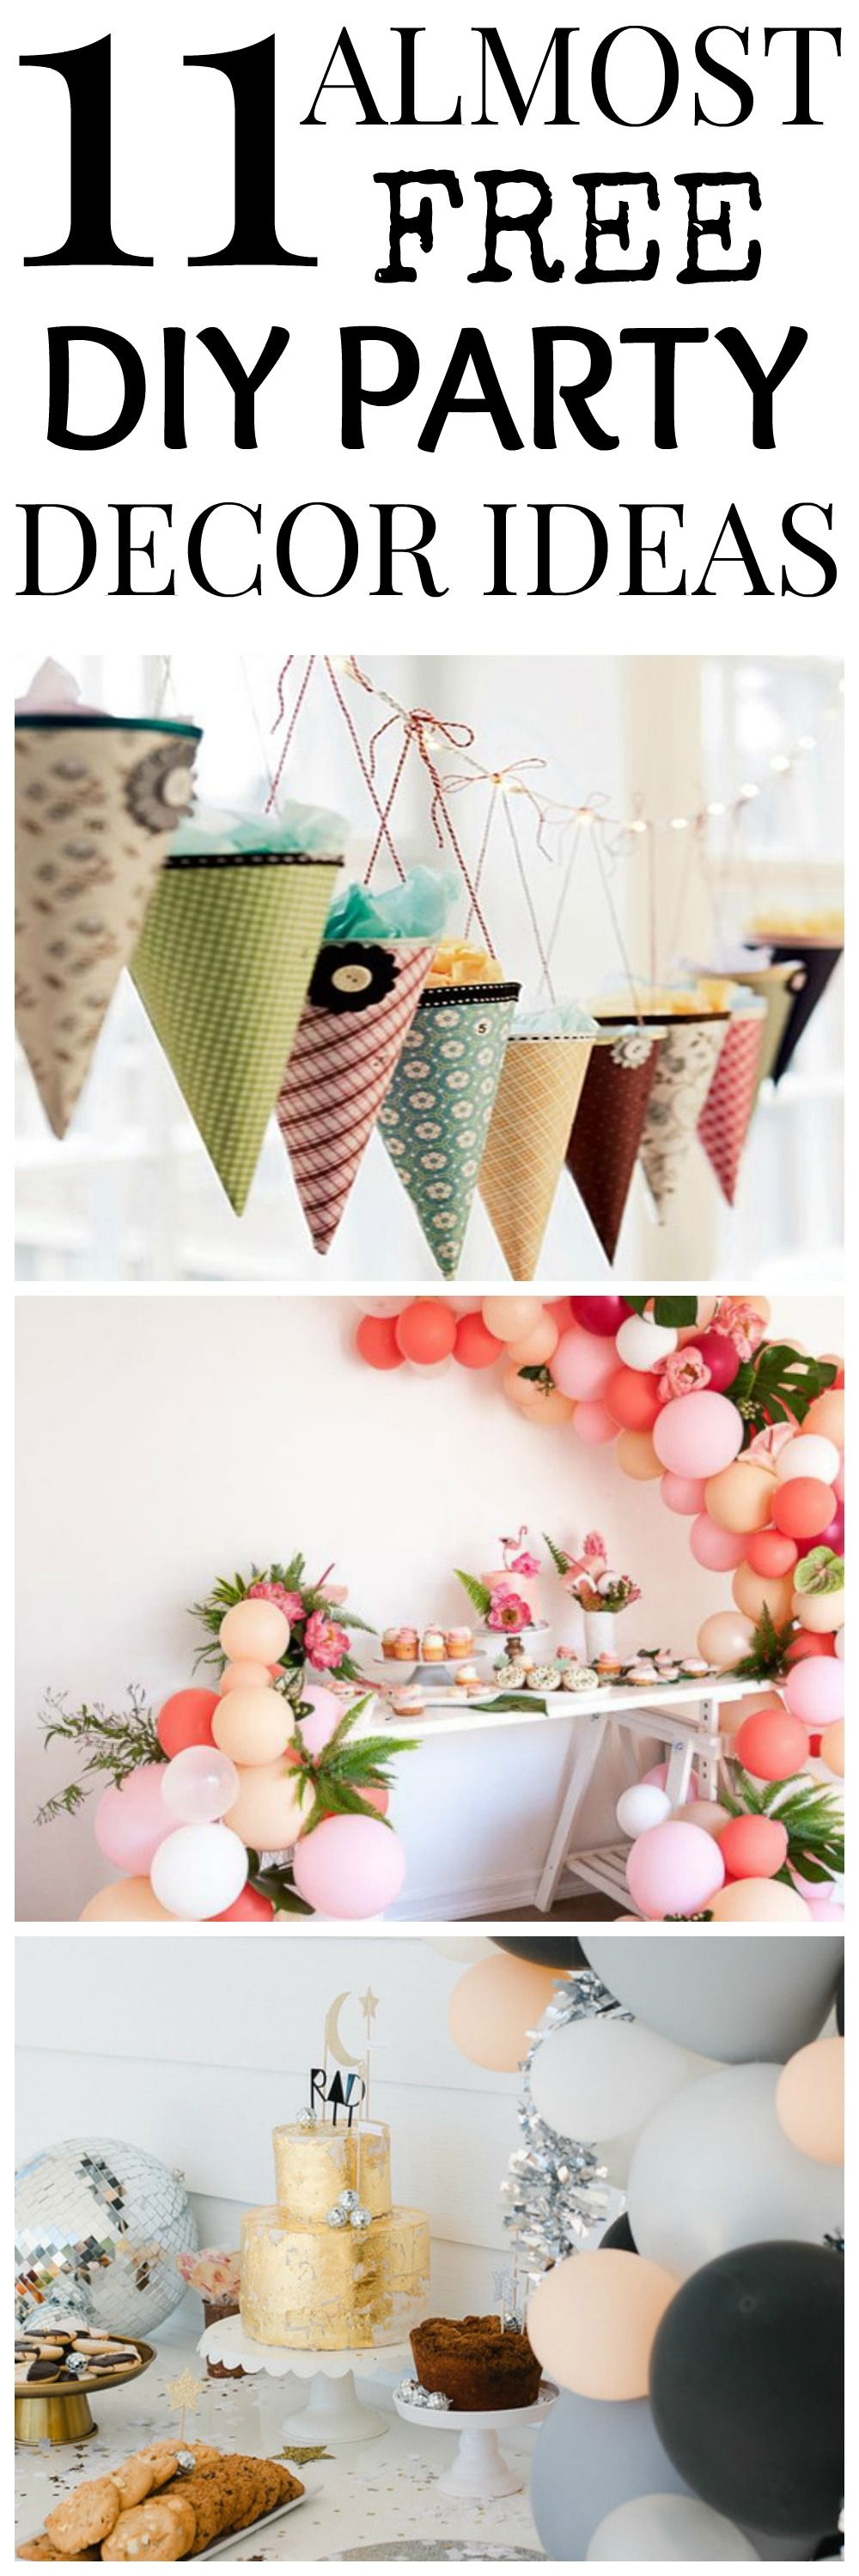 11 Almost-Free DIY Party Decor Ideas | Pinterest | Home-made party ...